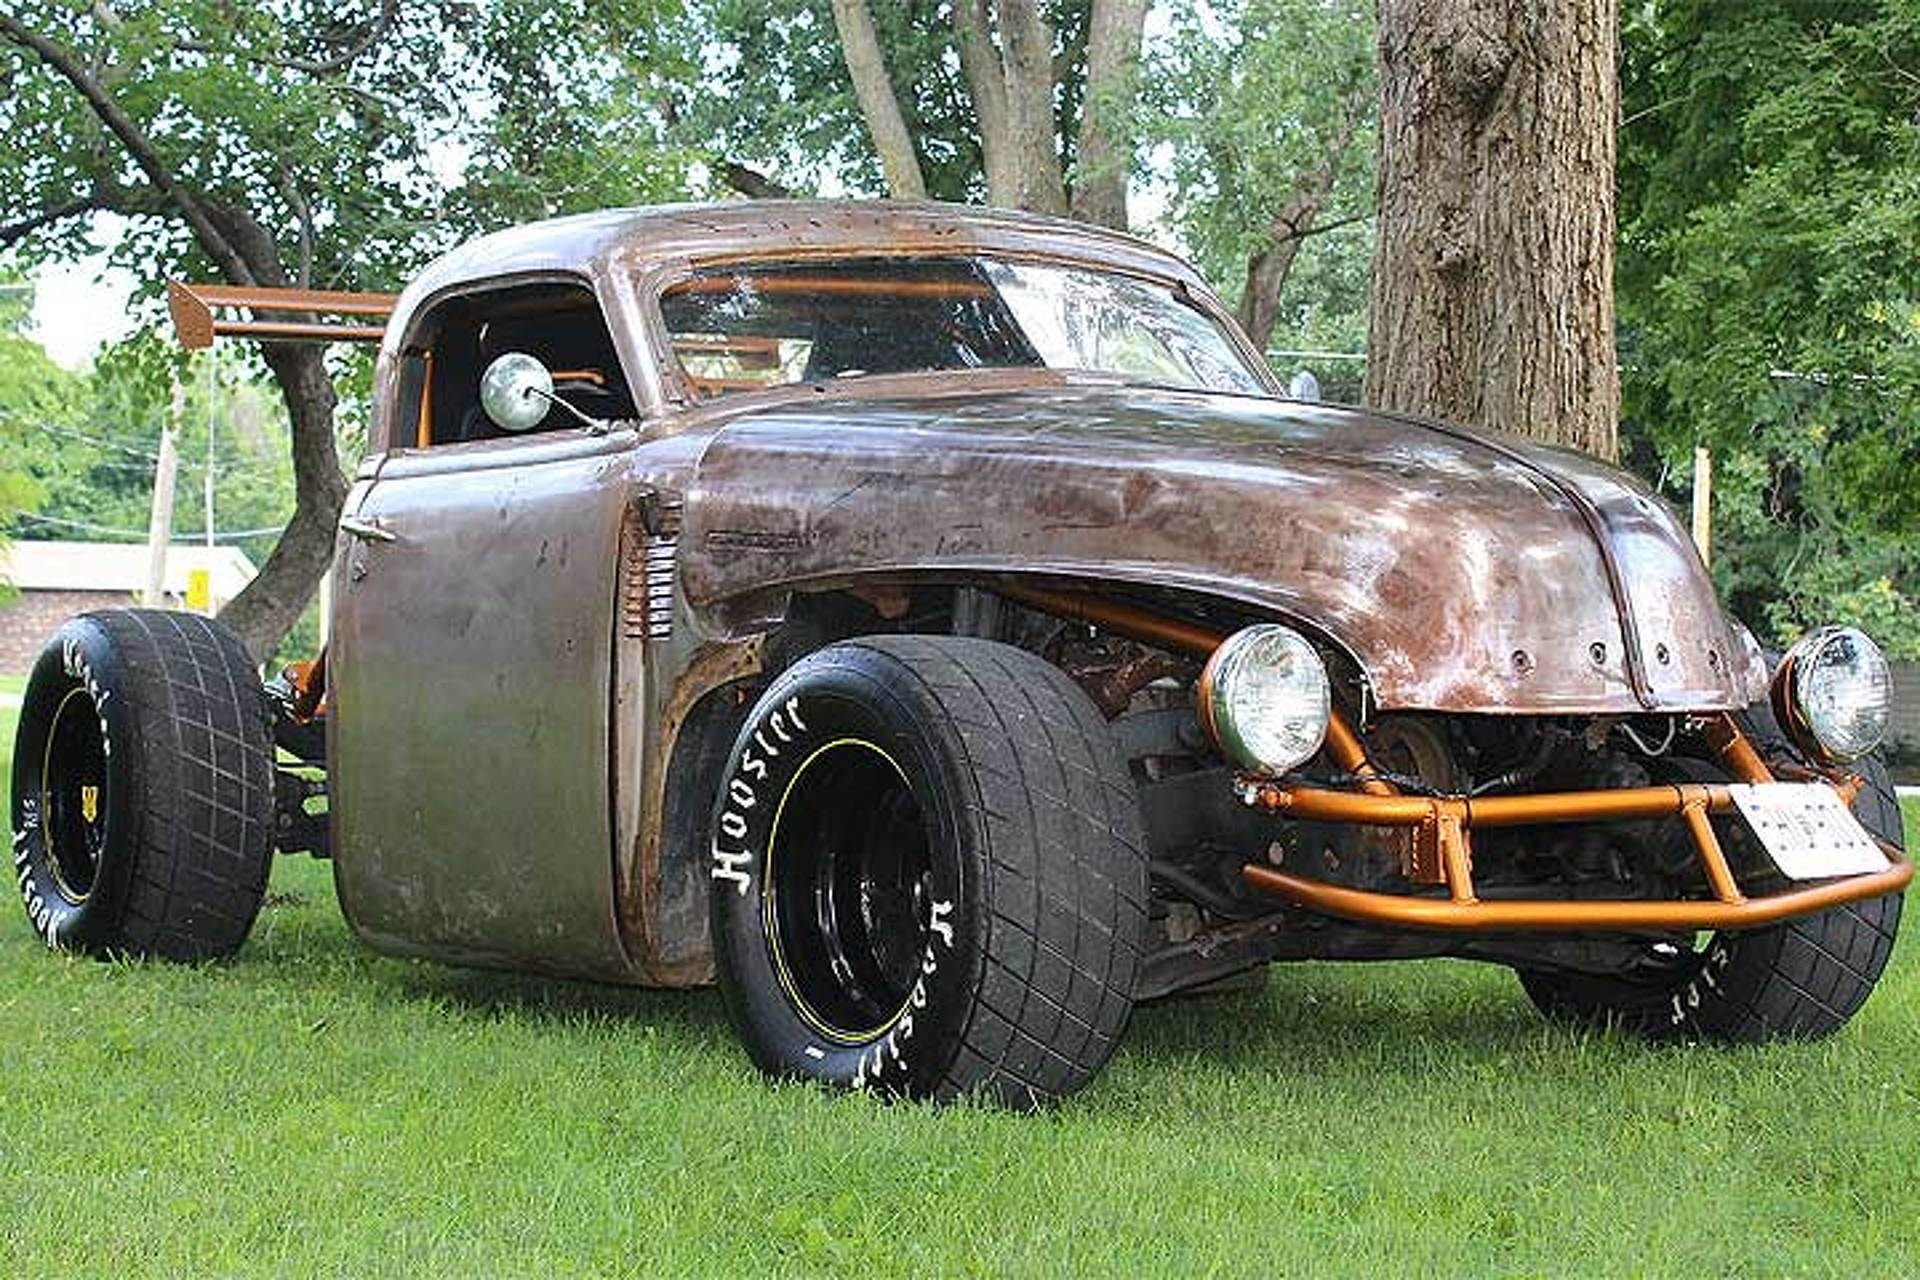 This 1947 Chevrolet Pickup is Half Rat Rod, Half Racecar